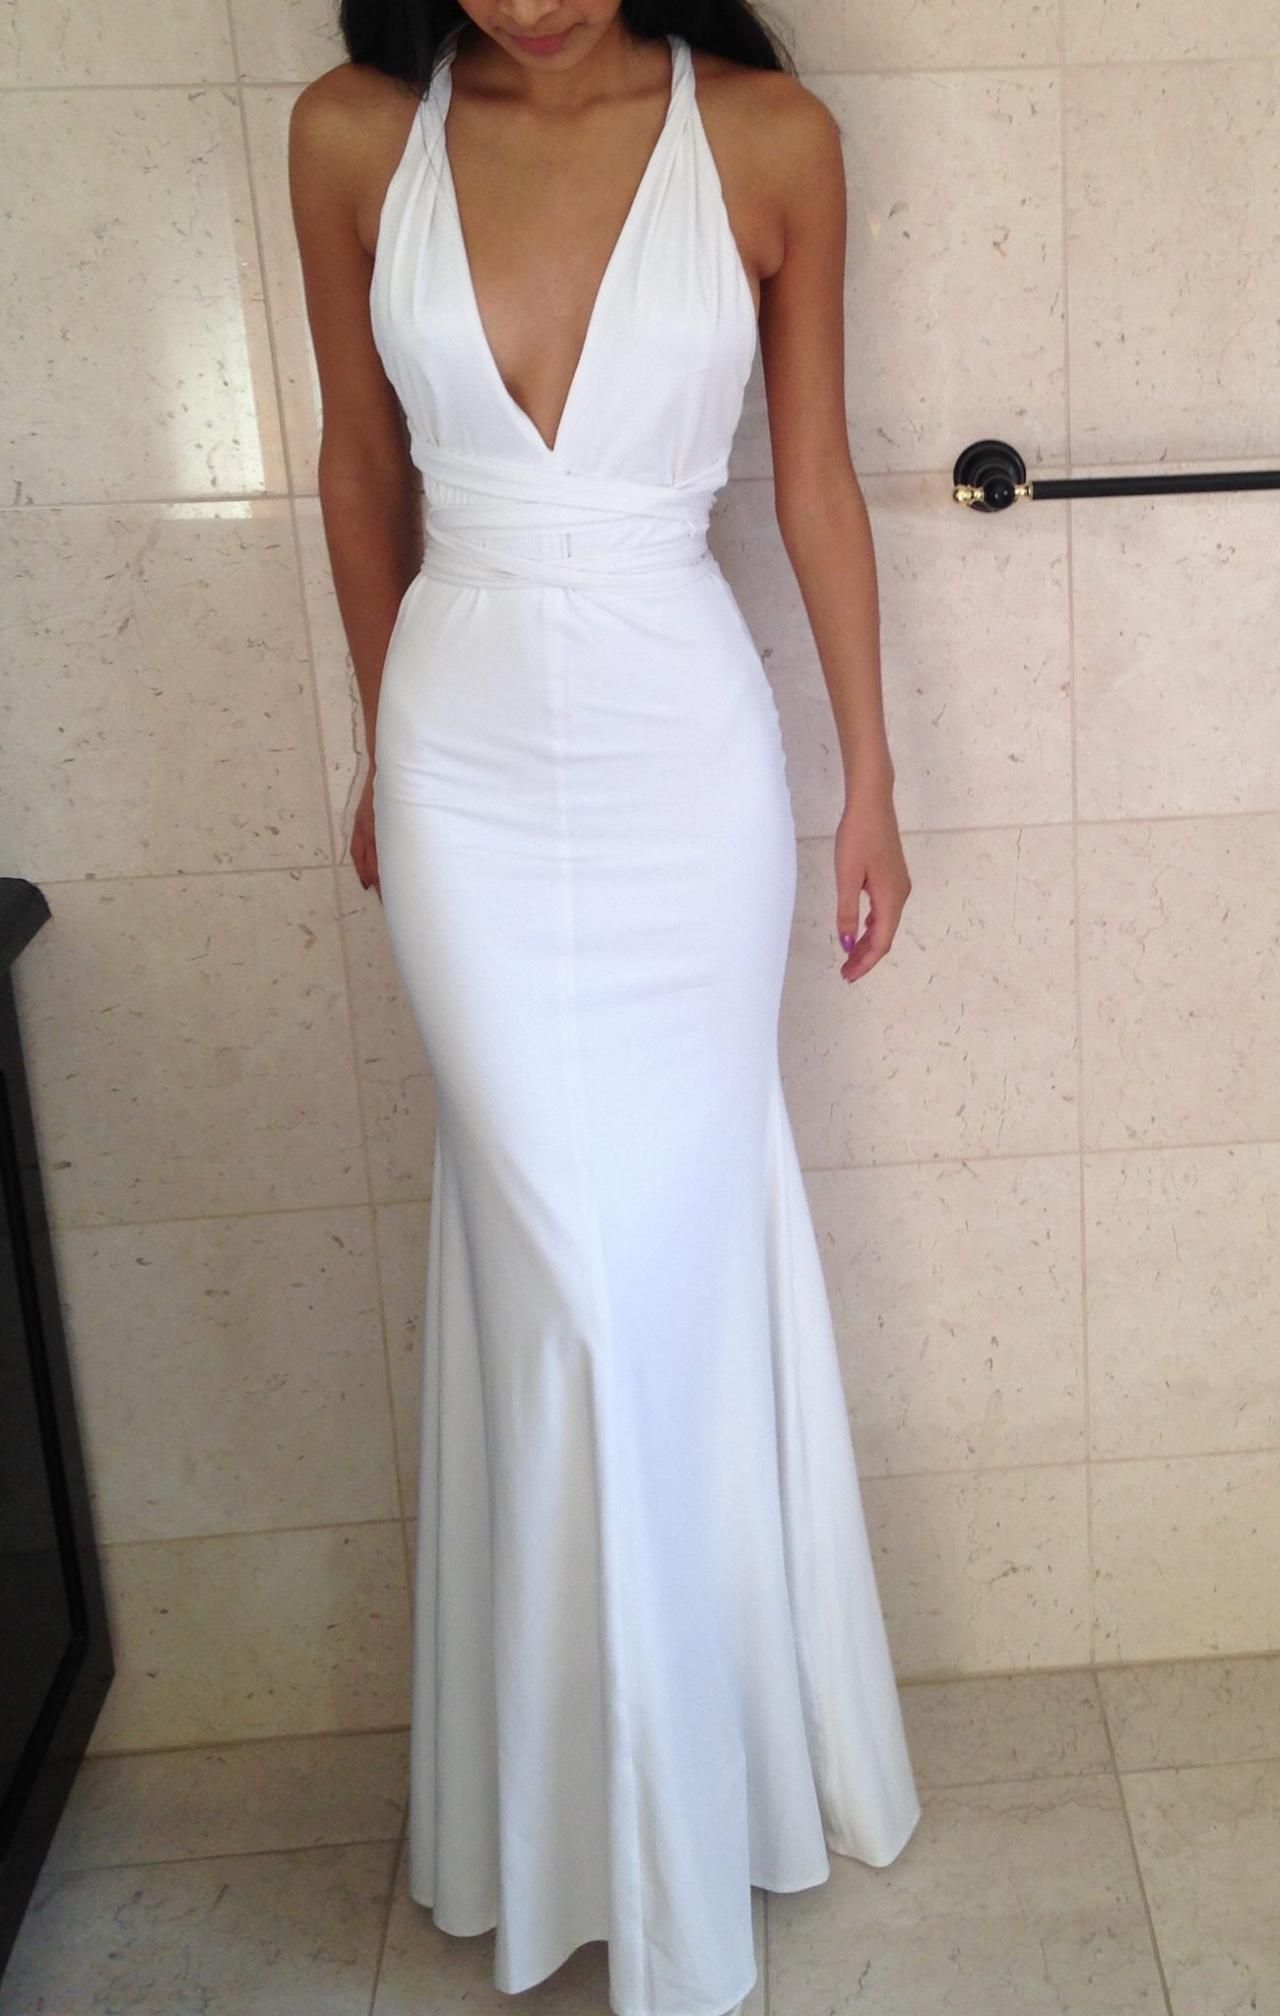 Fitted White Deep V Neck Mermaid Prom Dress Formal Gown Evening